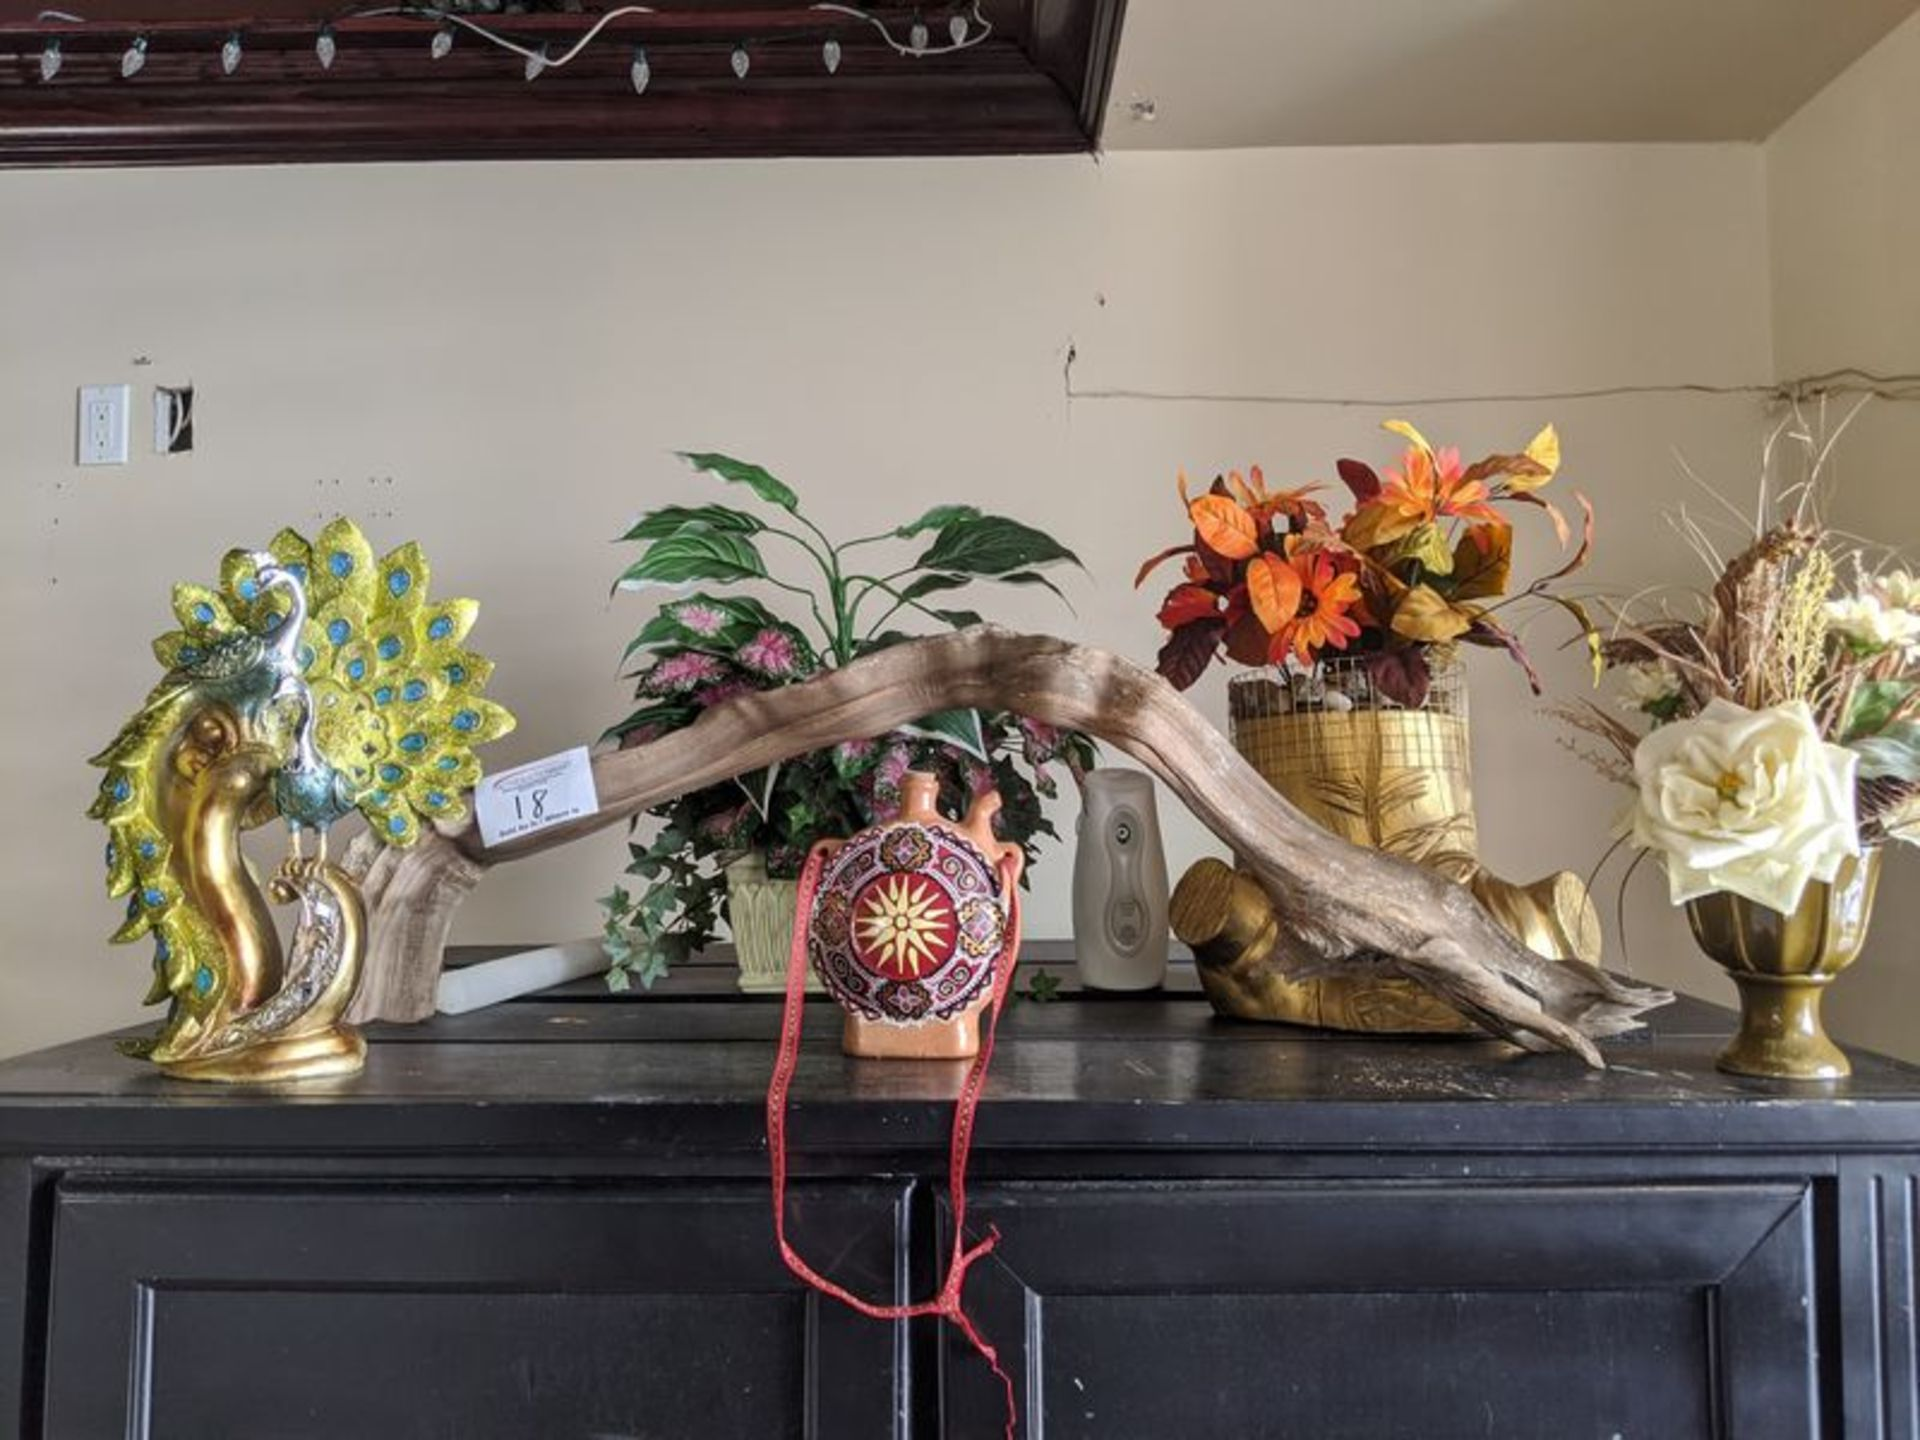 Lot 18 - Assorted Plants and Ornaments